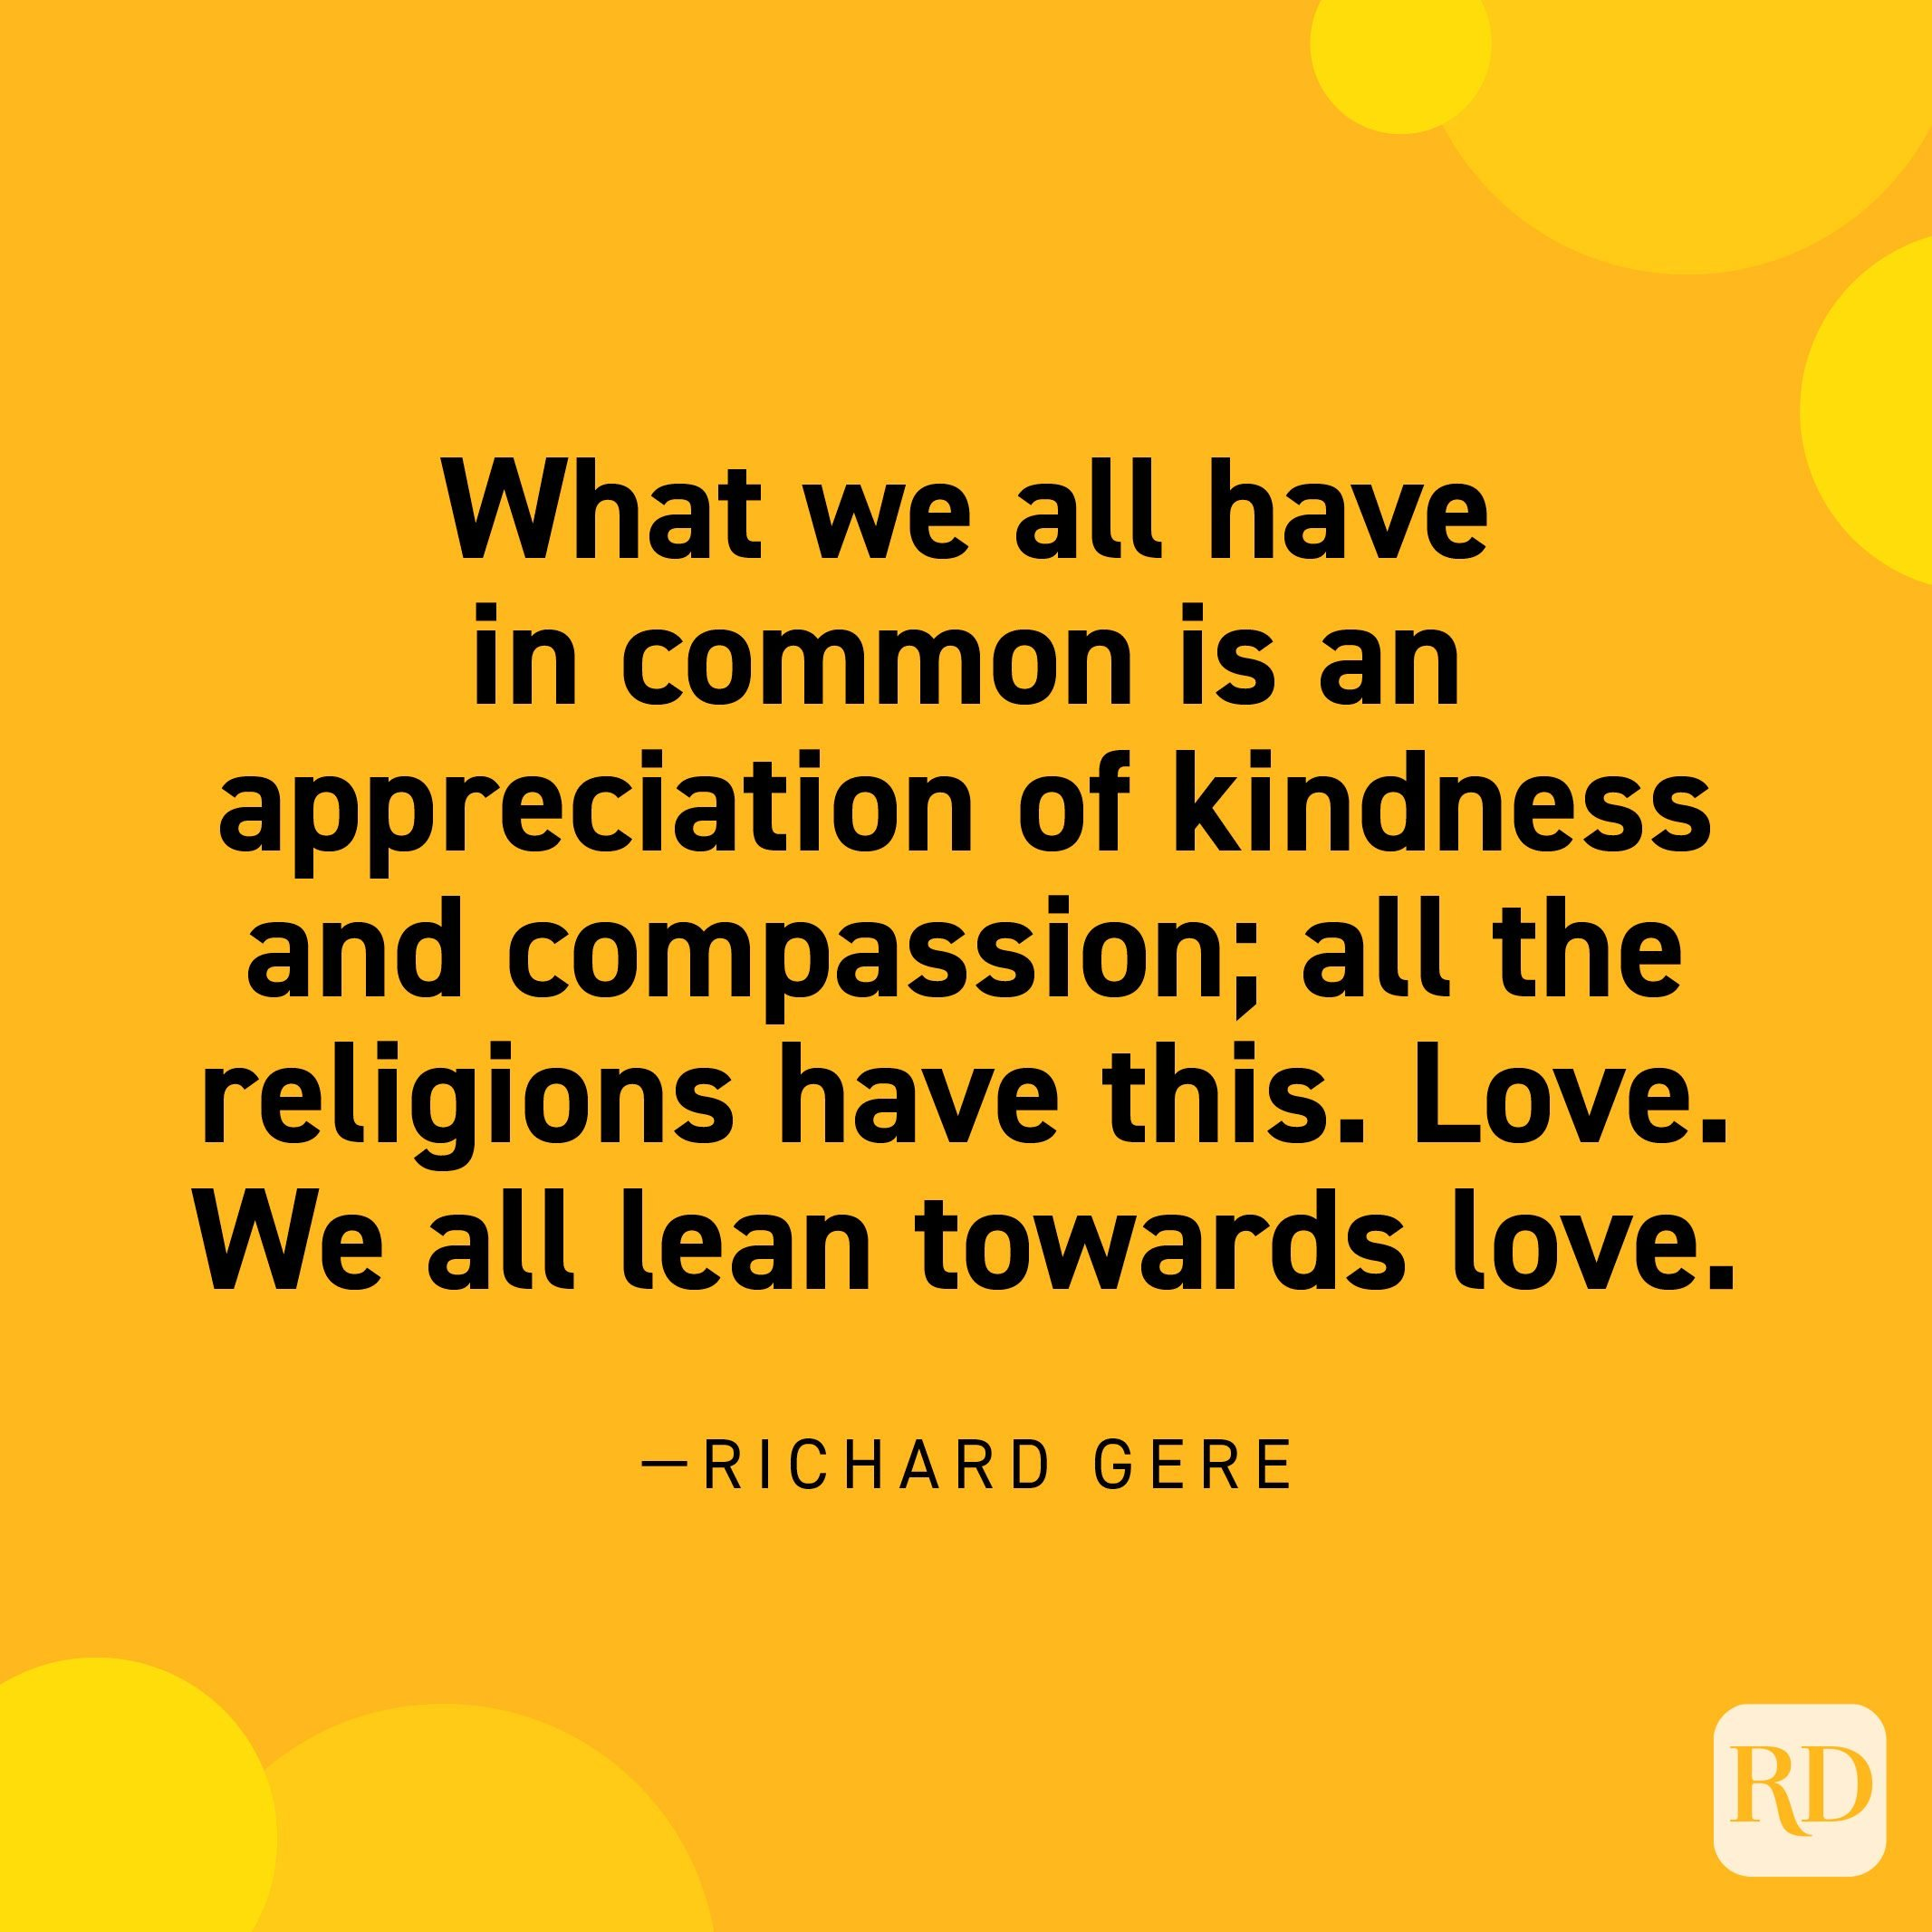 """""""What we all have in common is an appreciation of kindness and compassion; all the religions have this. Love. We all lean towards love."""" —Richard Gere"""